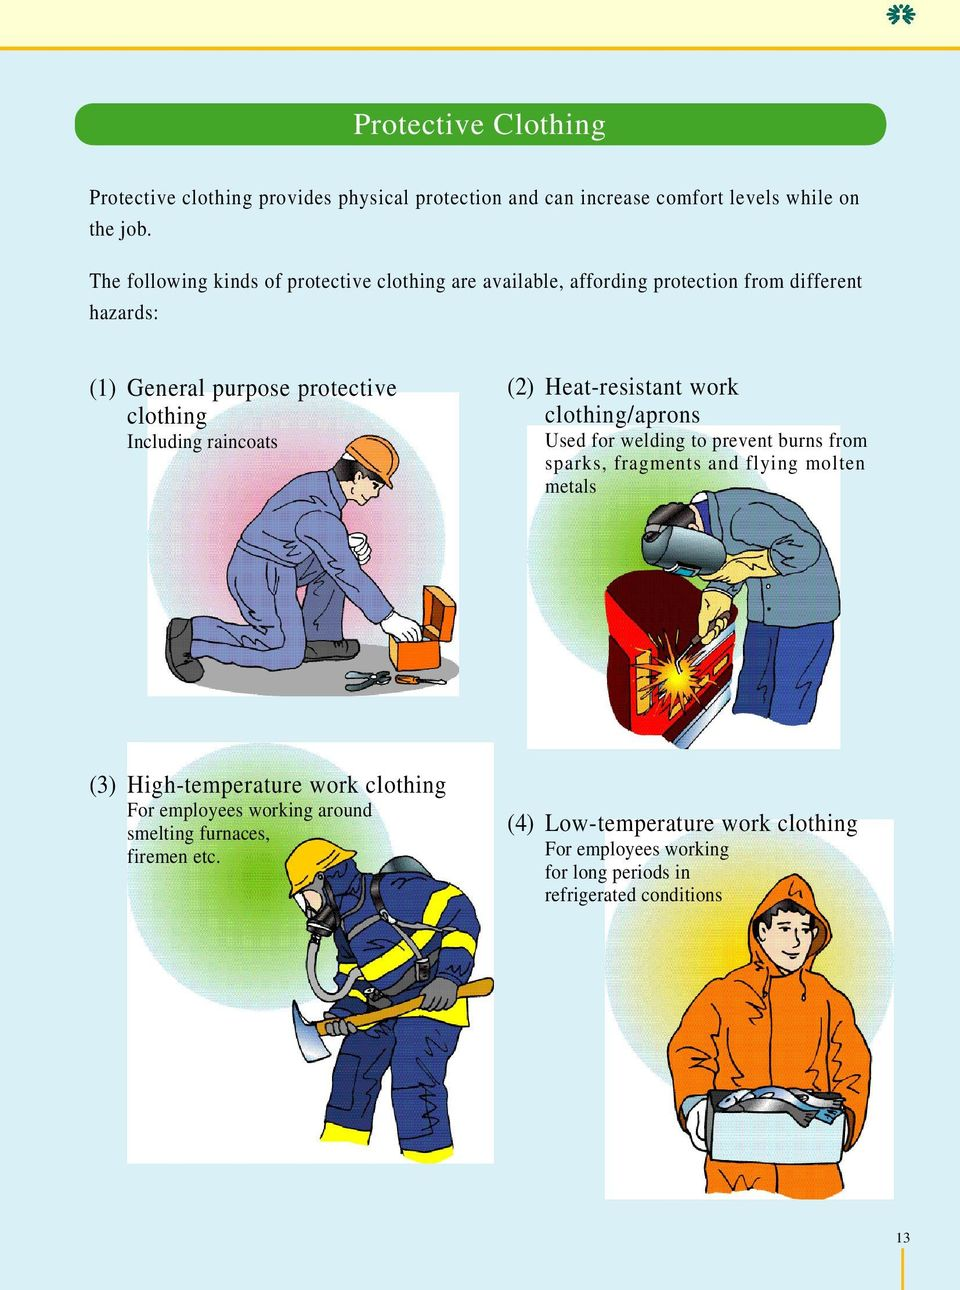 Including raincoats (2) Heat-resistant work clothing/aprons Used for welding to prevent burns from sparks, fragments and flying molten metals (3)